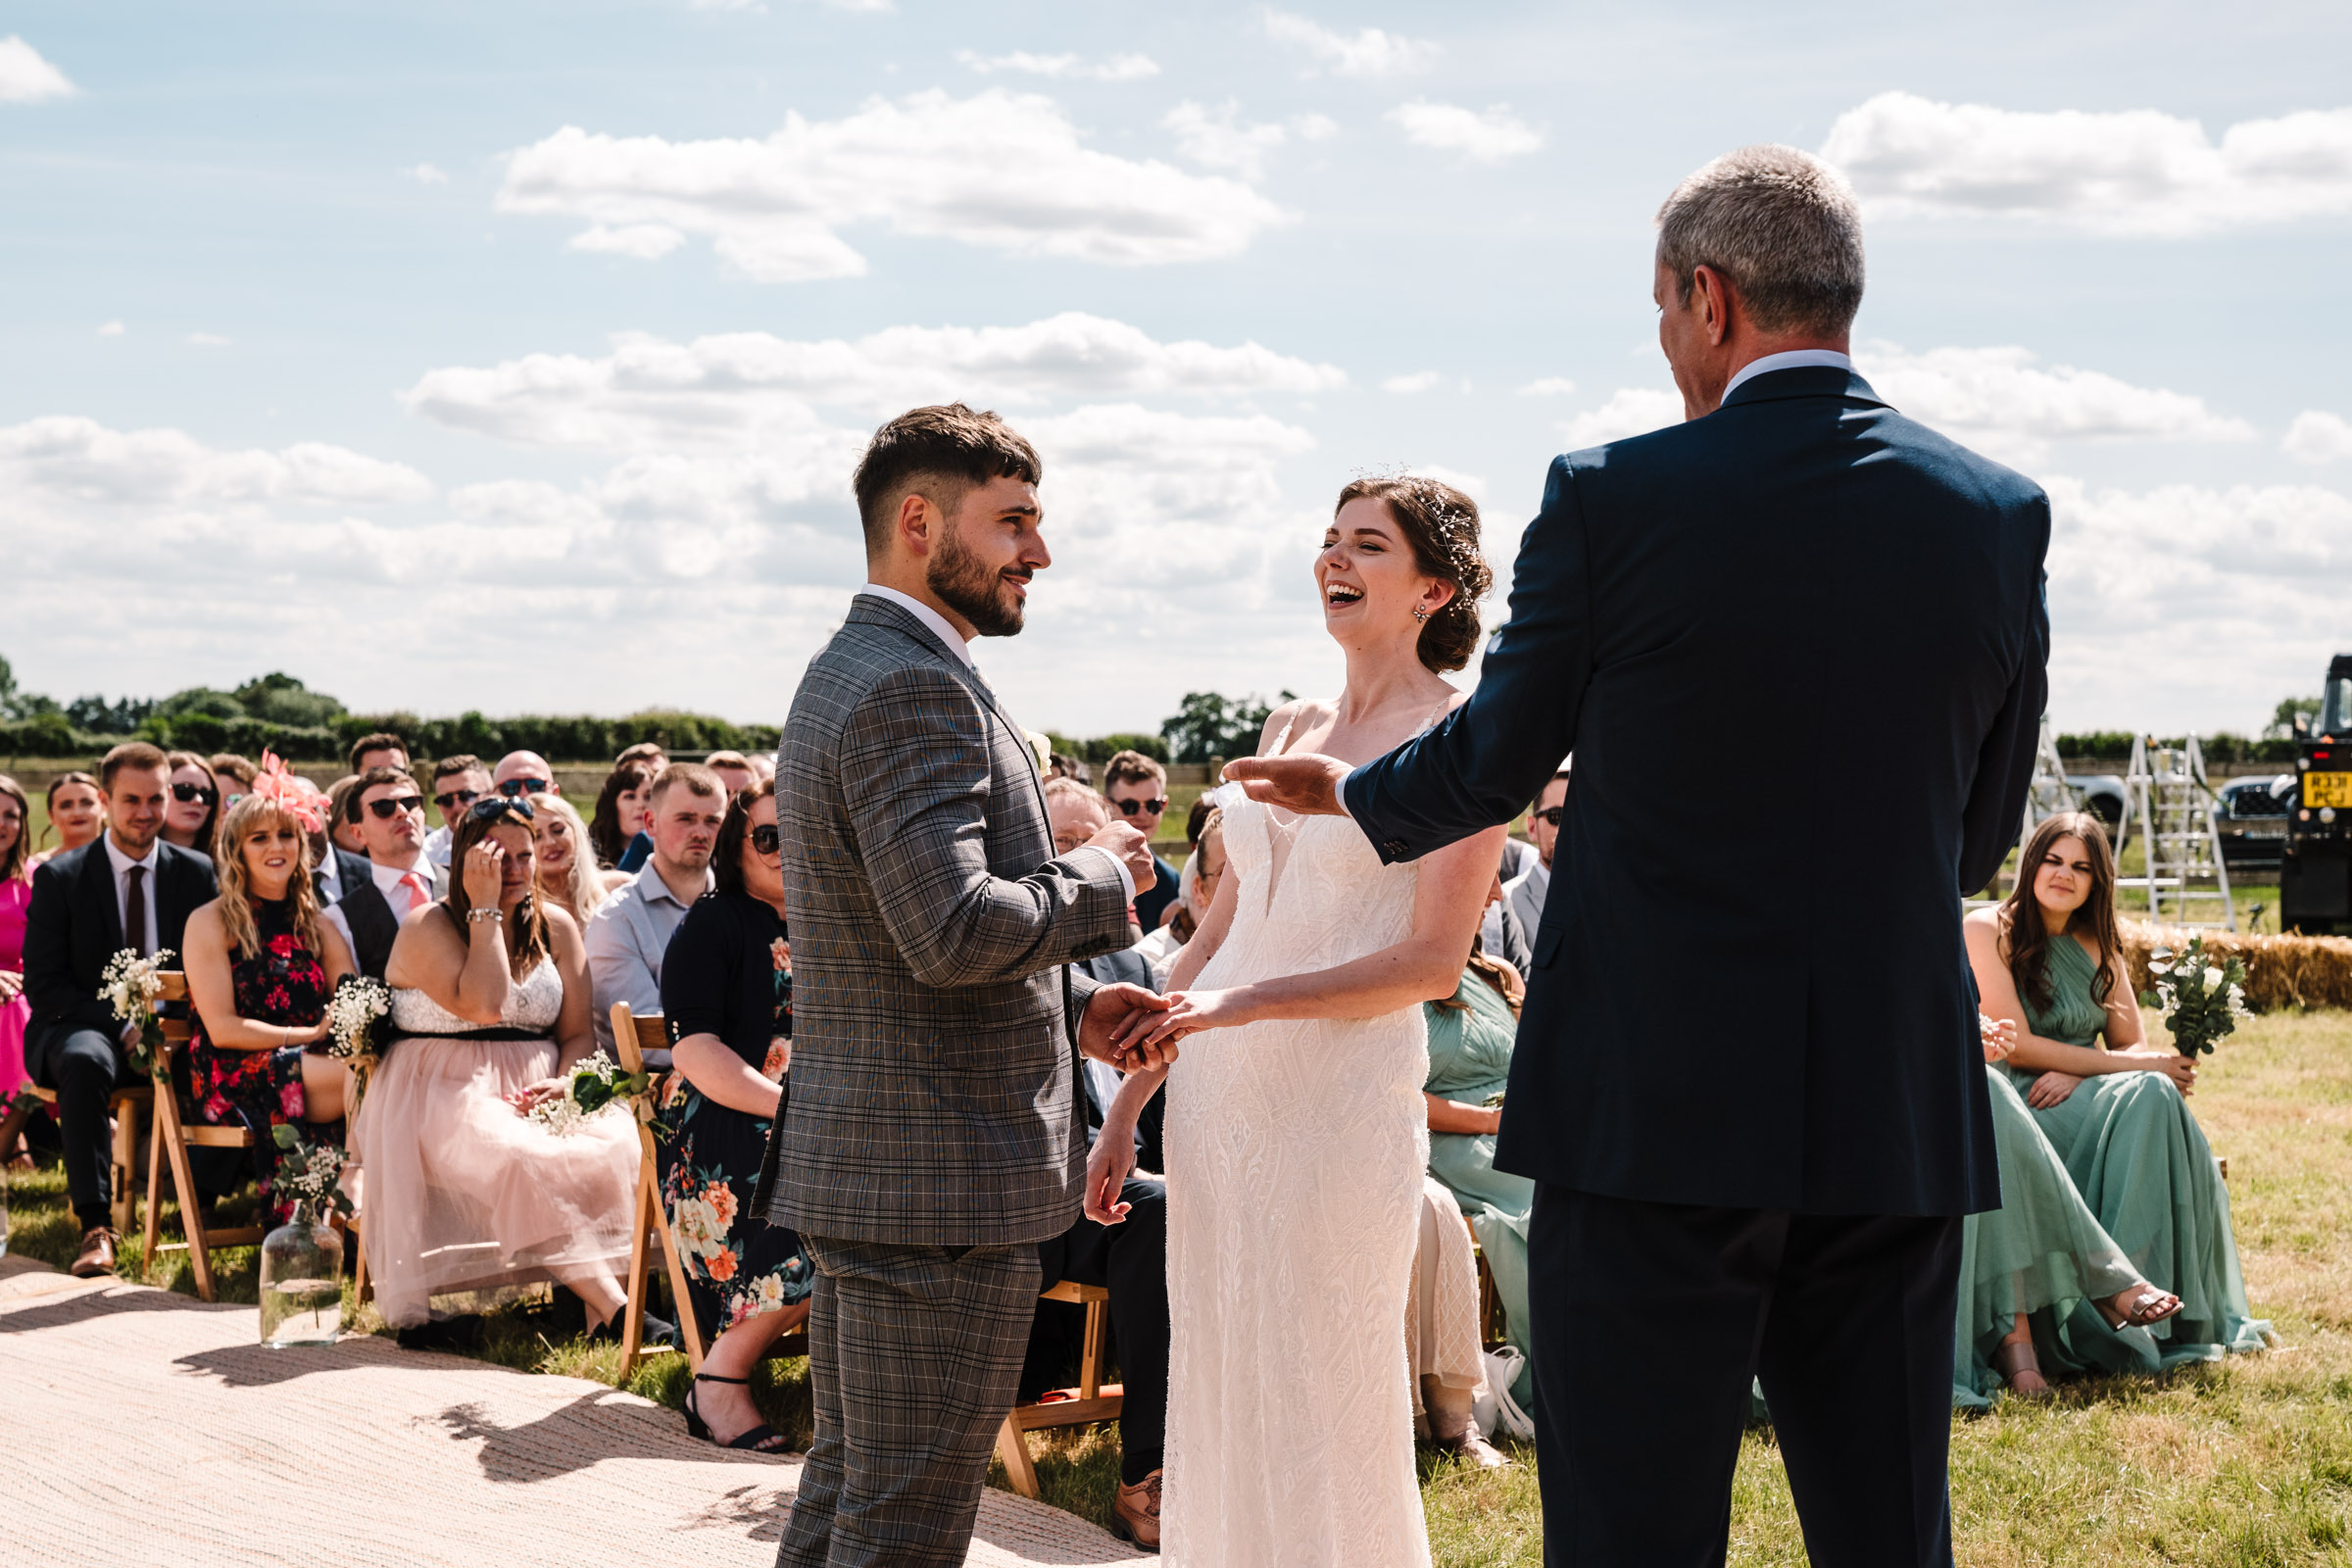 bride and groom laughing as they exchange rings at outdoor wedding ceremony